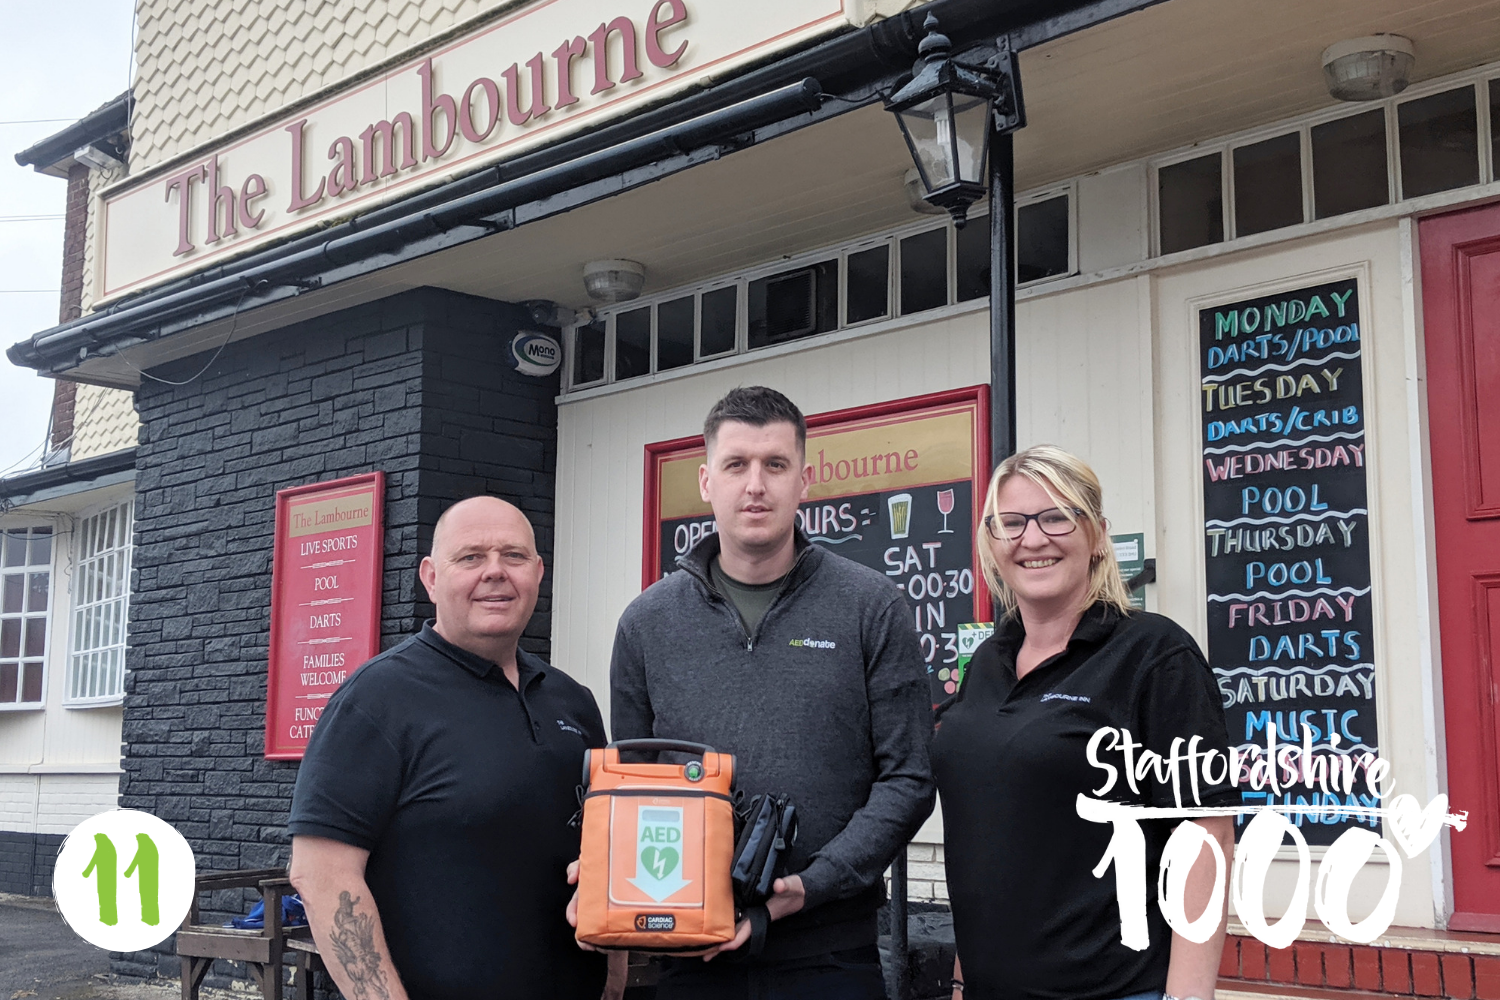 Defibrillator installed at The Lambourne Inn